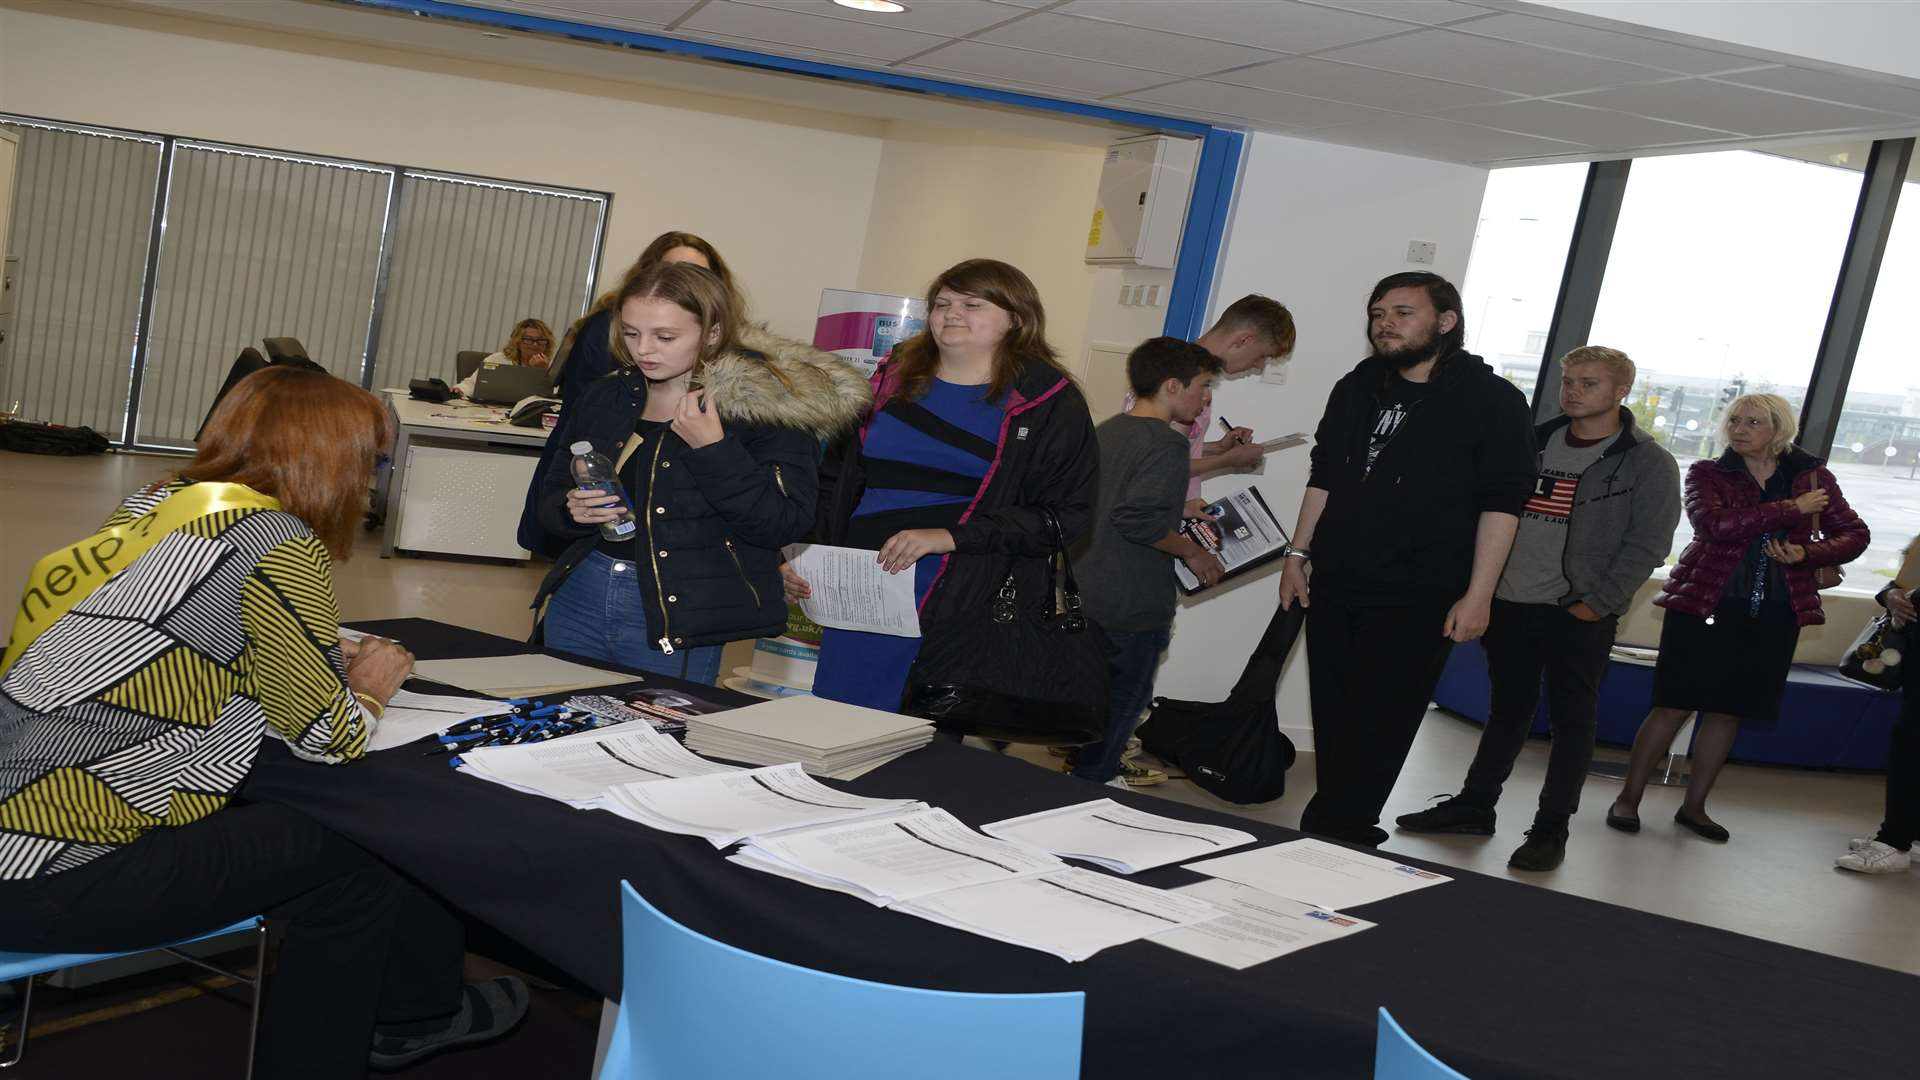 Students enrolling at the new Ashford College